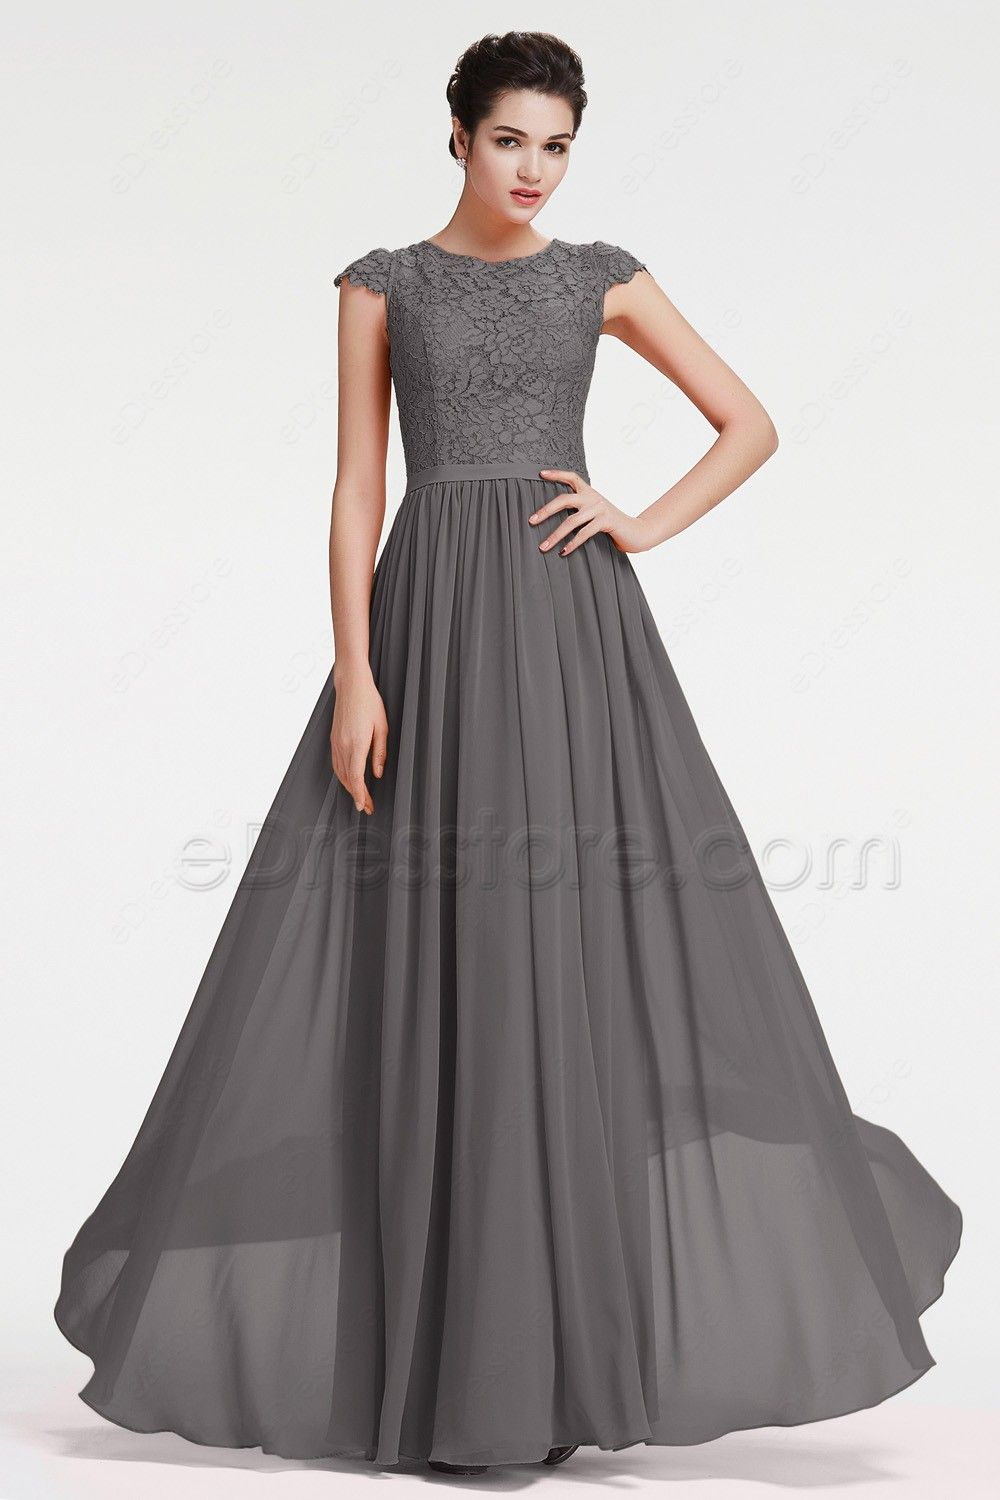 The Charcoal Grey Bridesmaid Dress Is Made Of Chiffon And Lace Fabric Top With